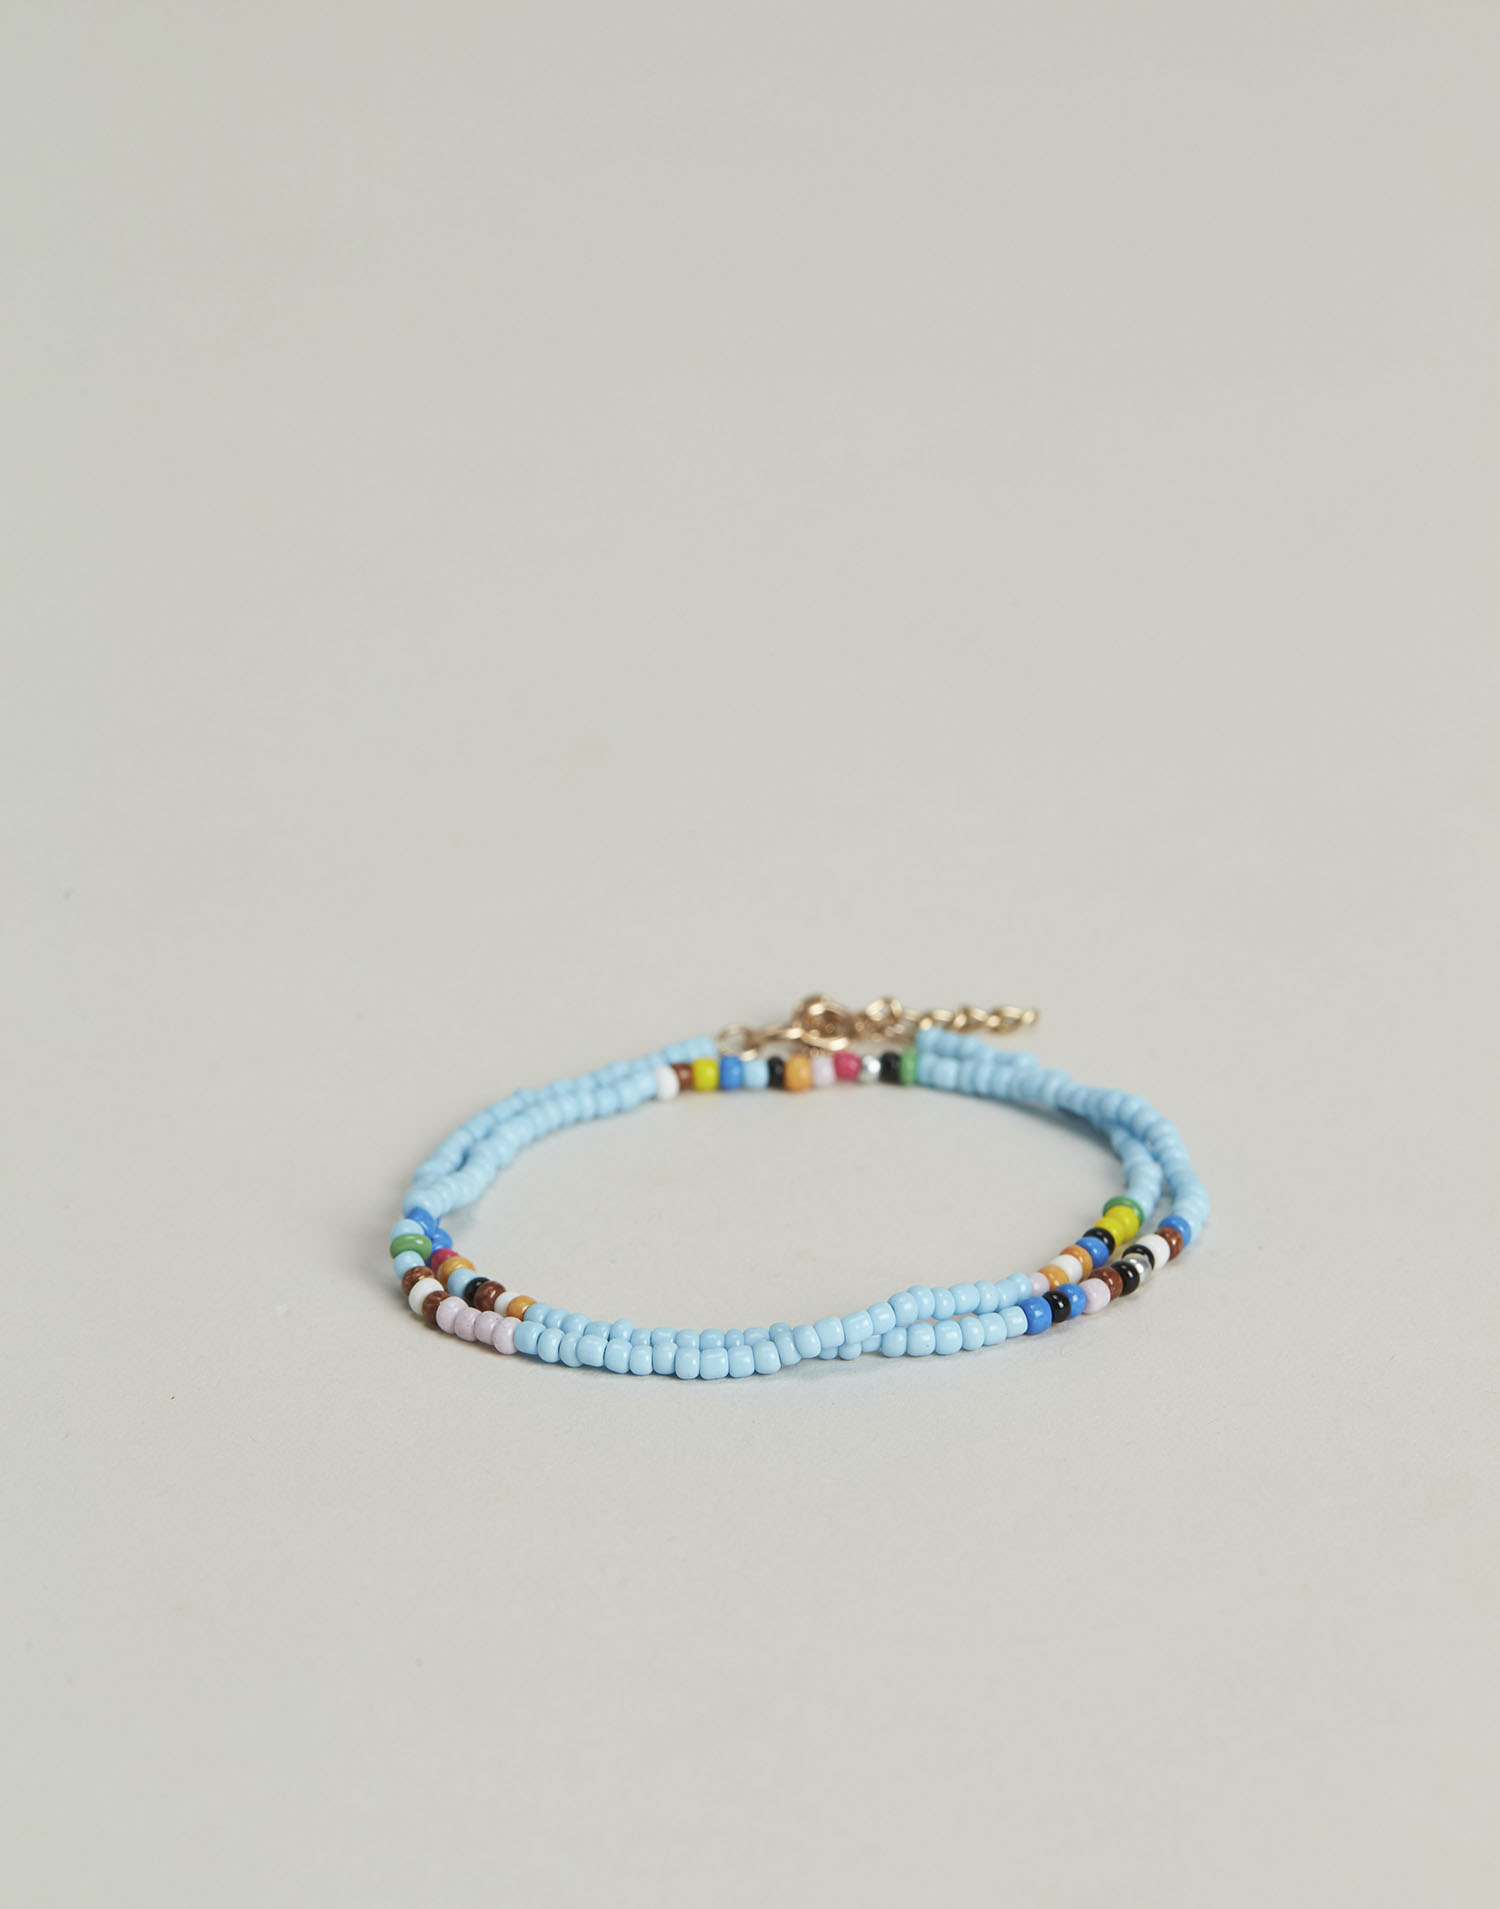 Double beads anklet bracelet